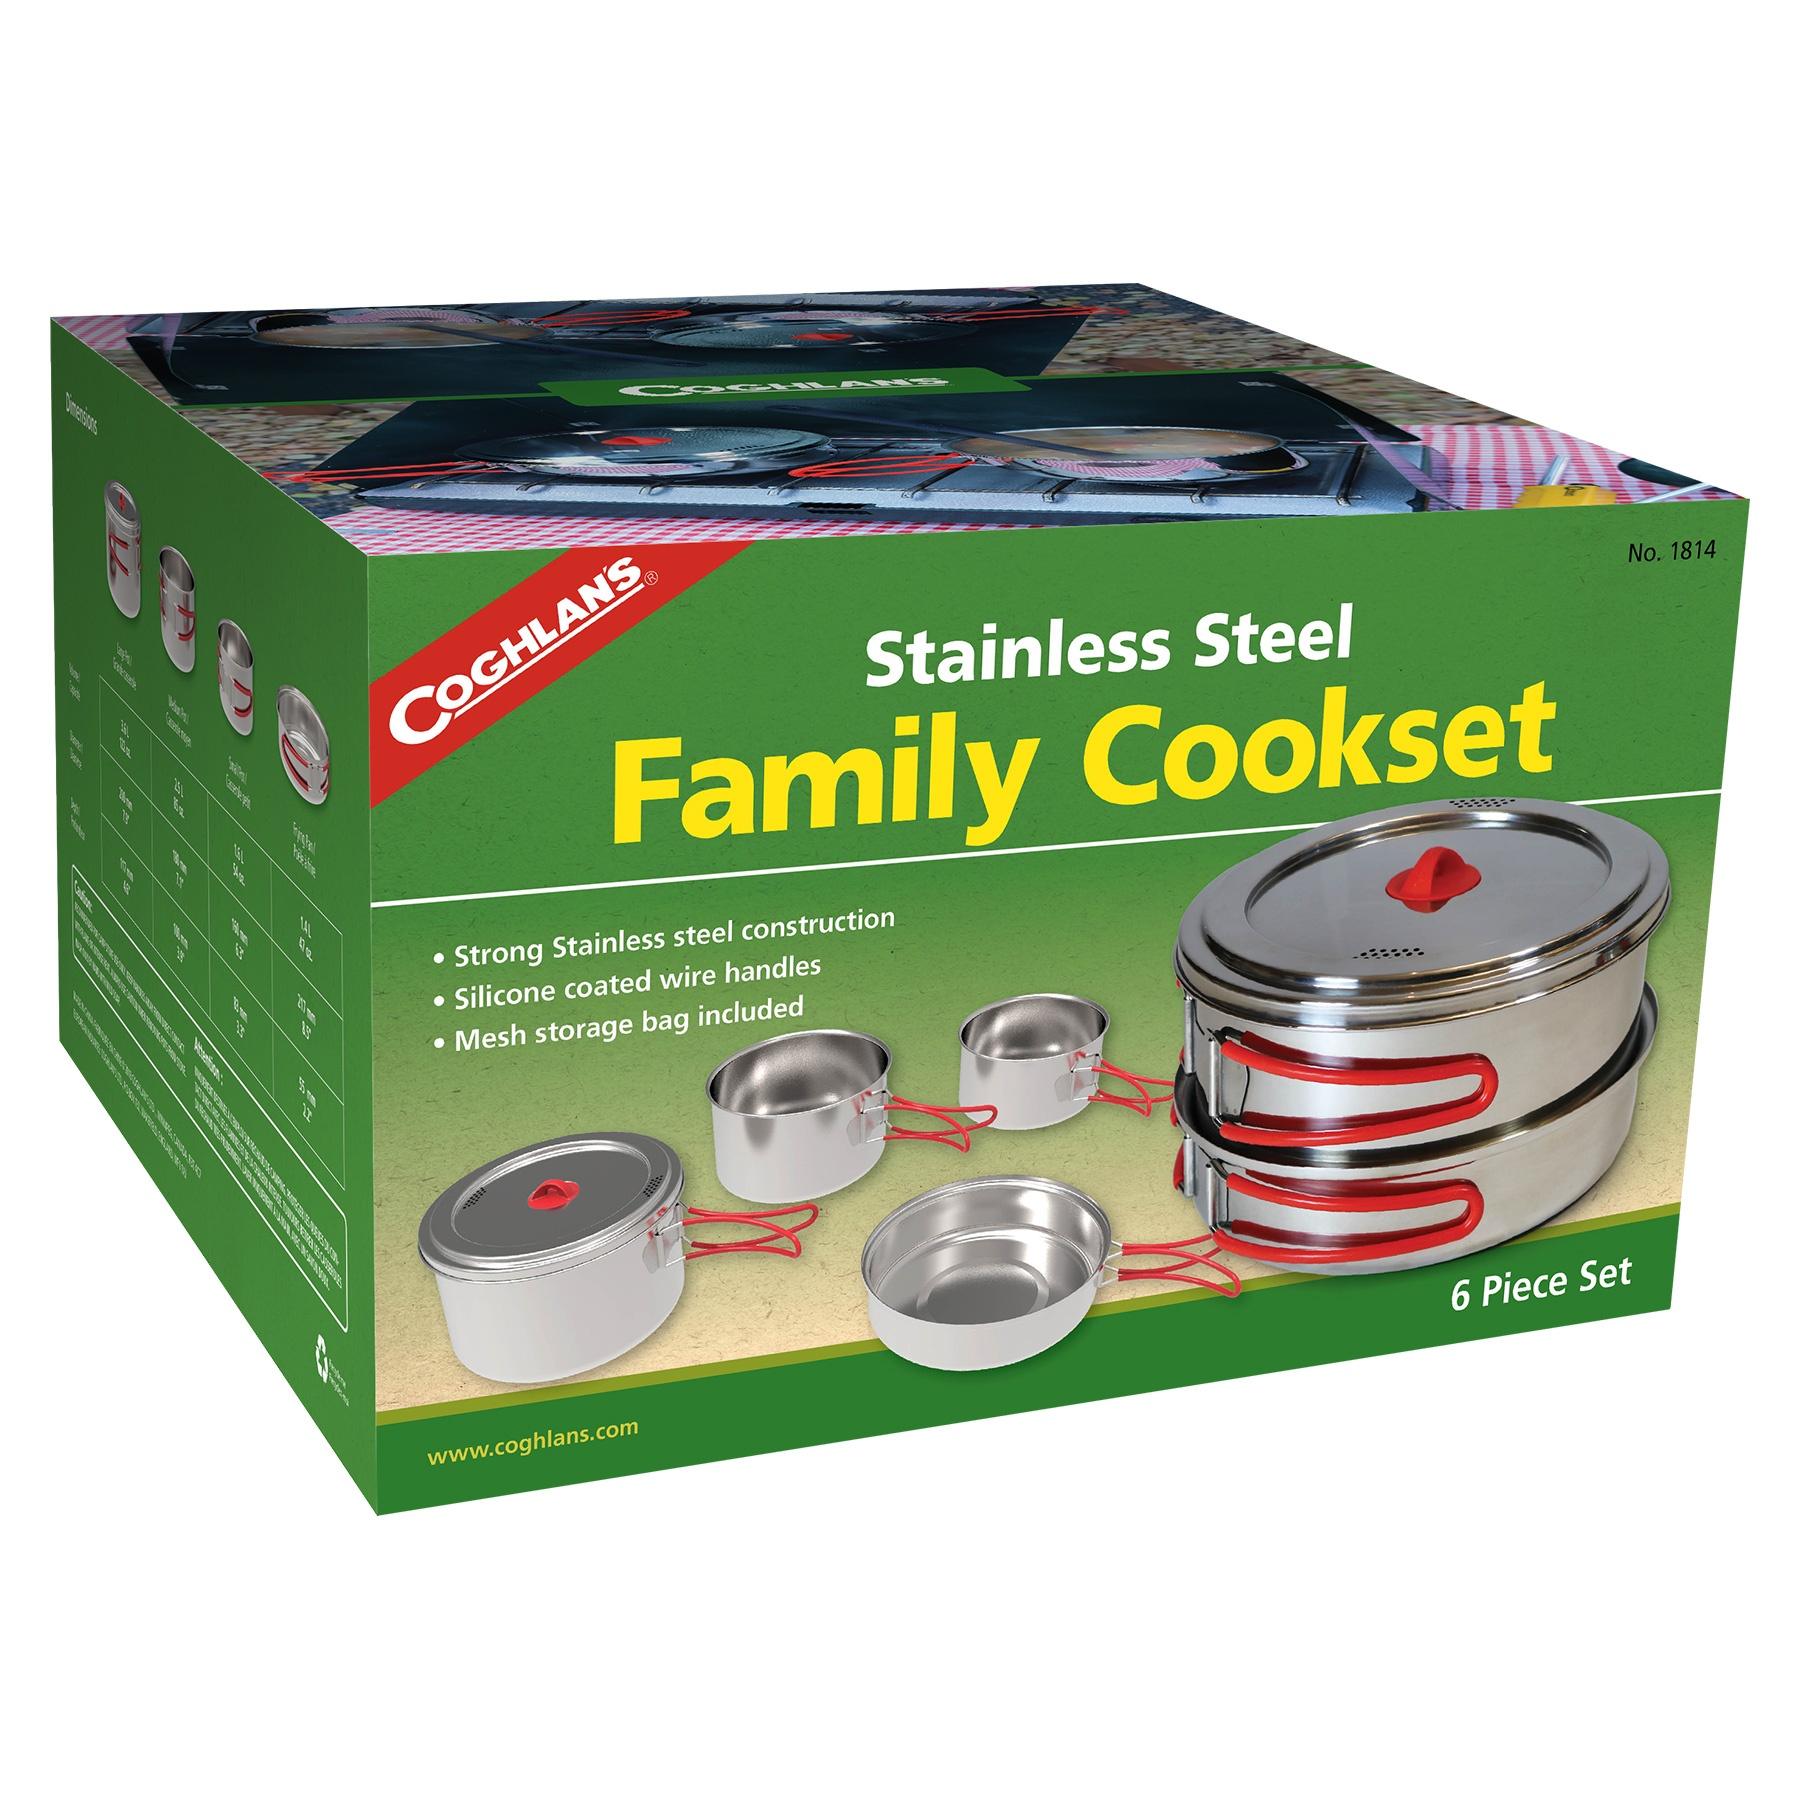 Stainless Steel Family Cookset